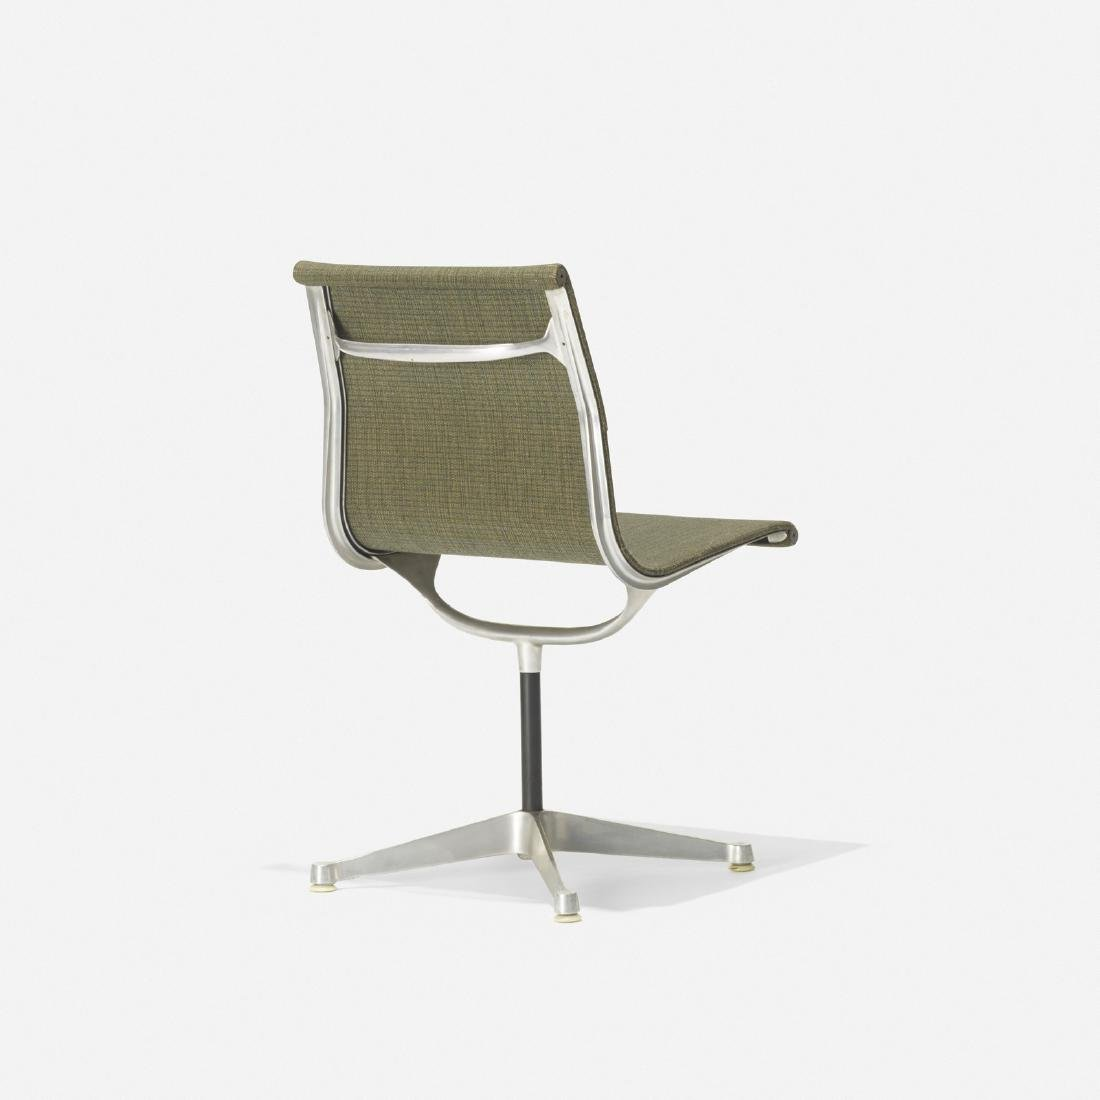 Charles & Ray Eames, Pre-Production Aluminum chair